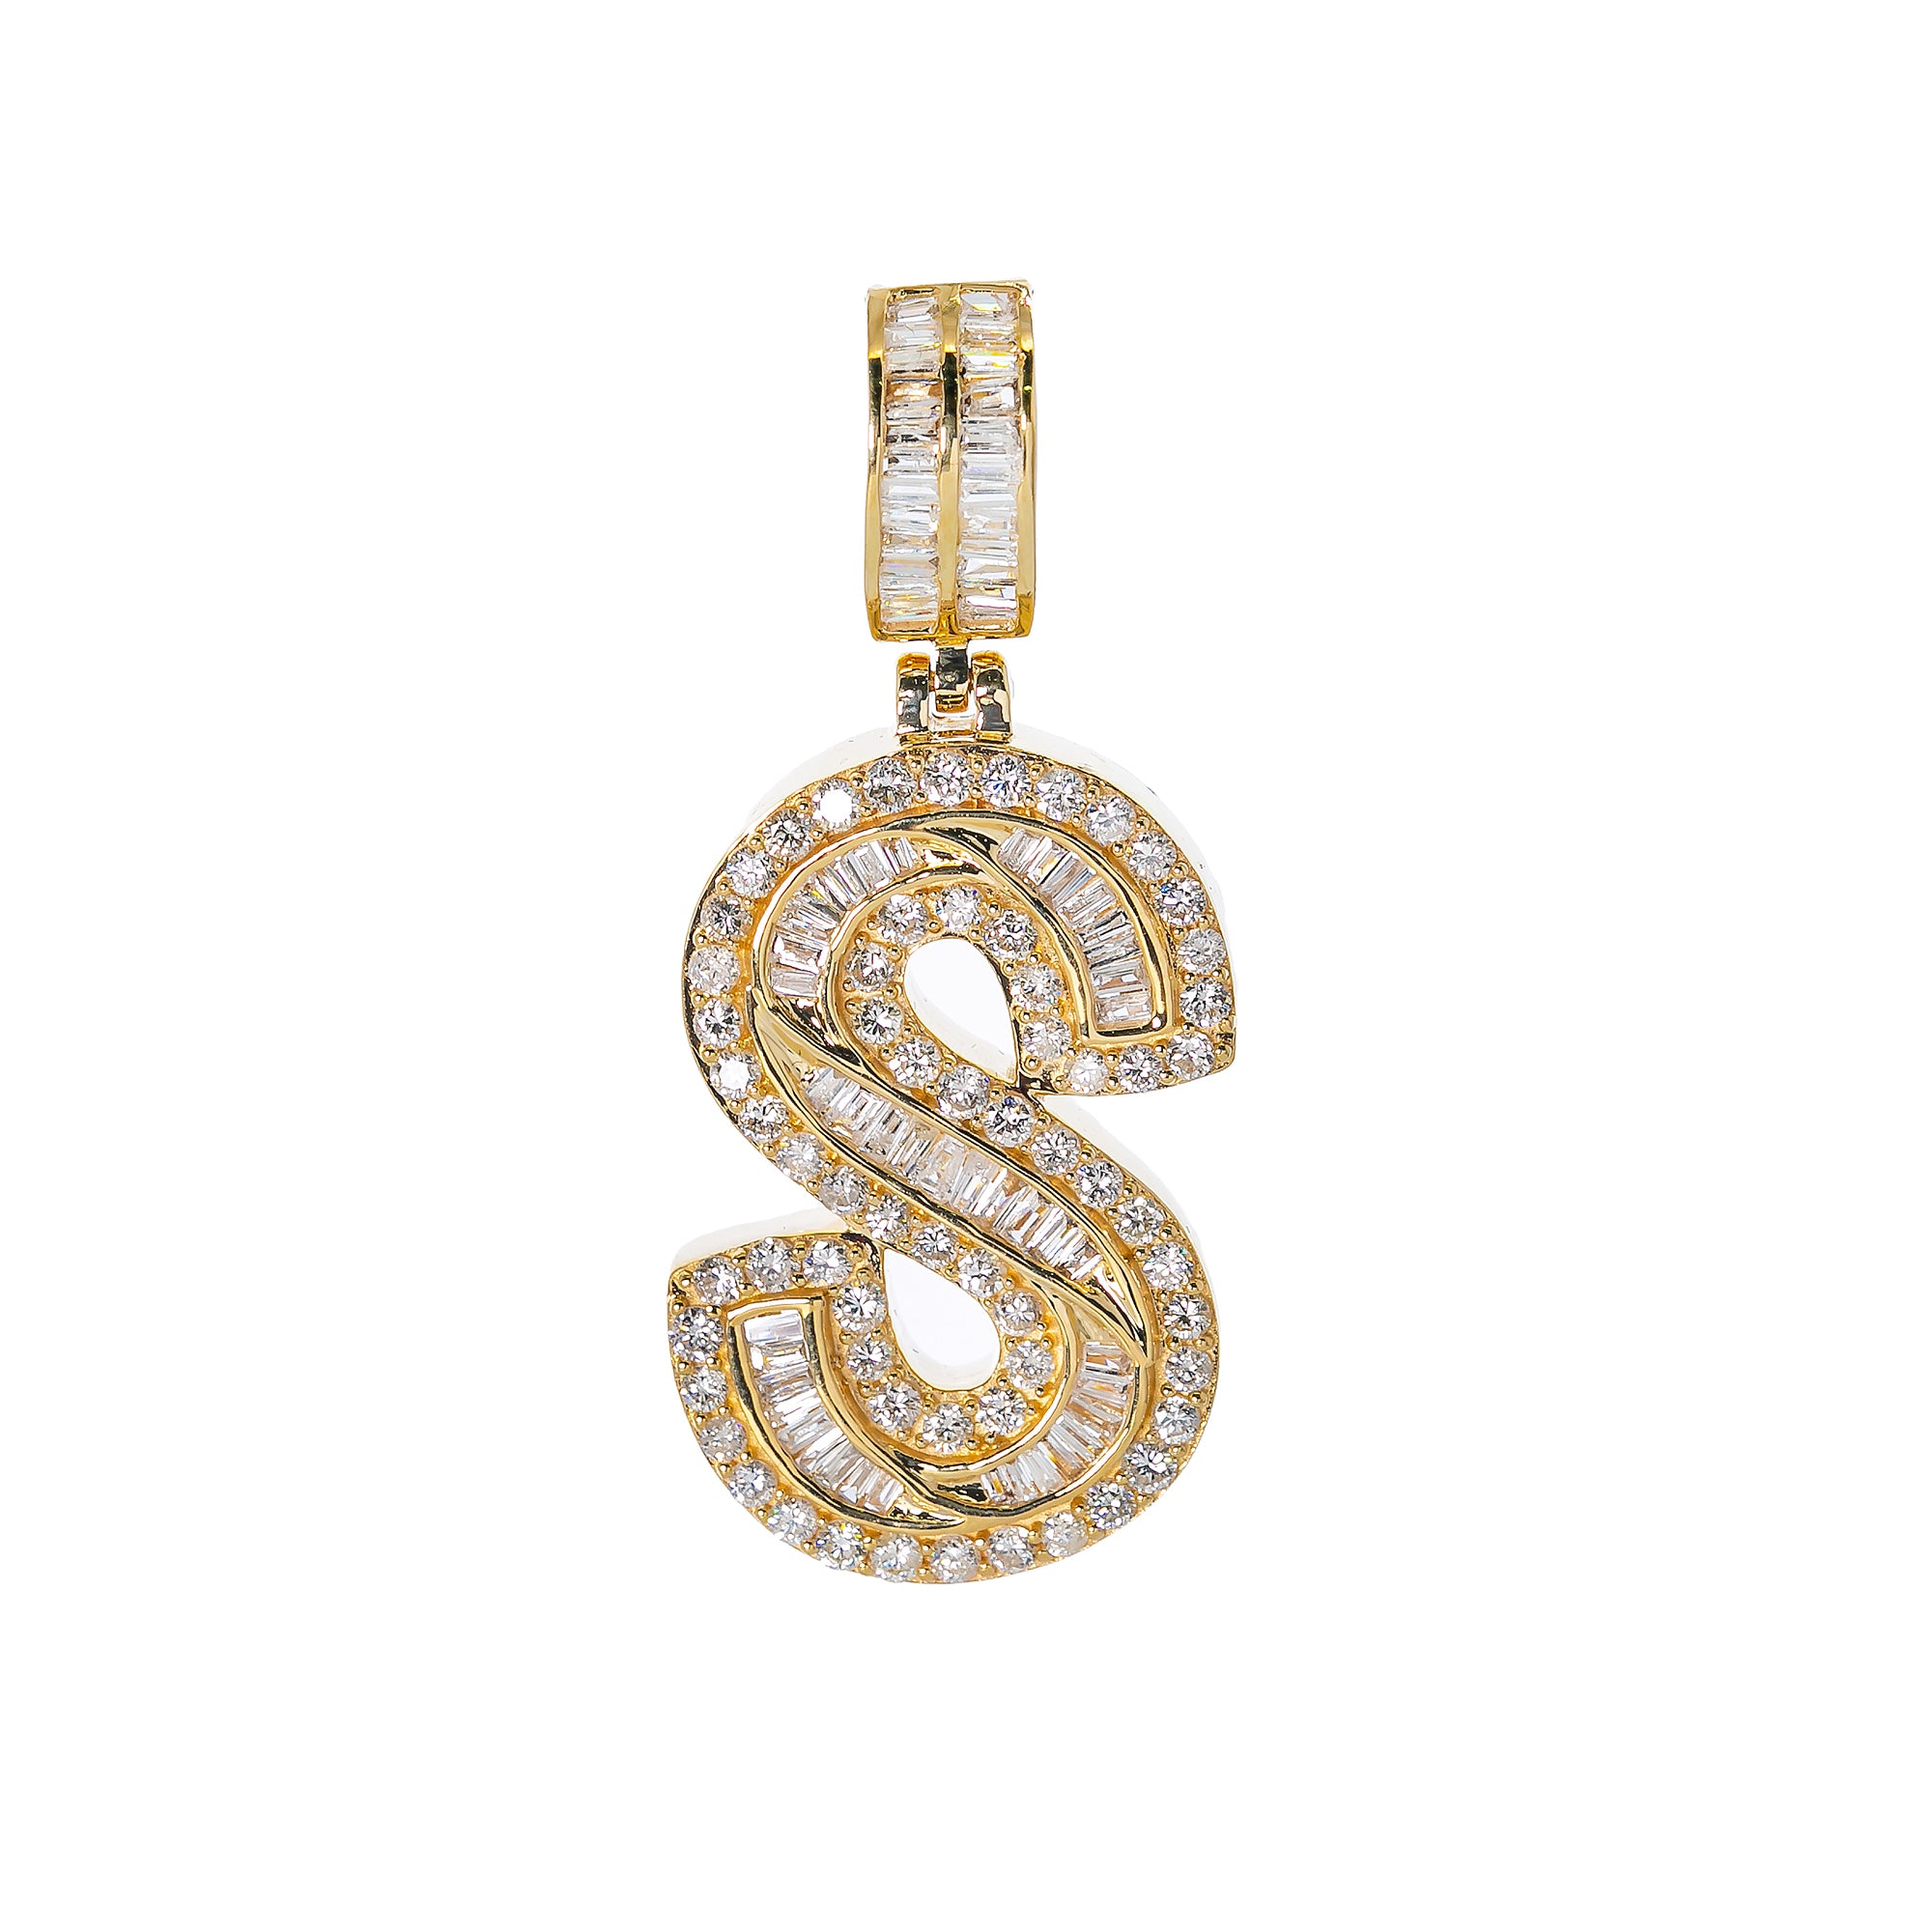 14K YELLOW GOLD UNISEX LETTER S WITH 2.57 CT DIAMONDS